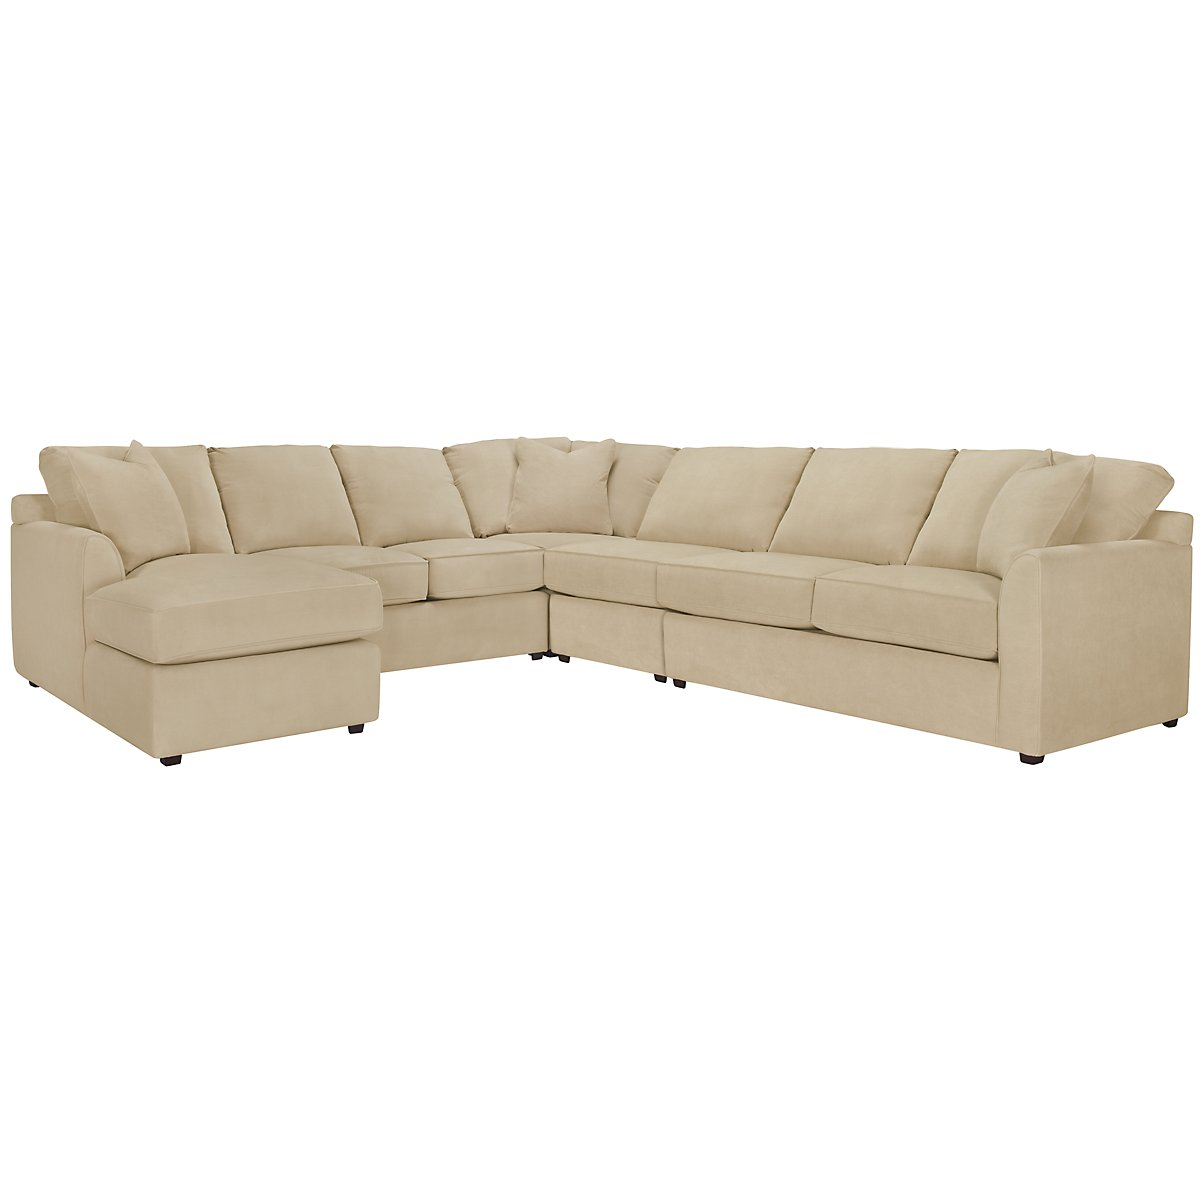 Express3 Light Beige Microfiber Large Left Chaise Sectional